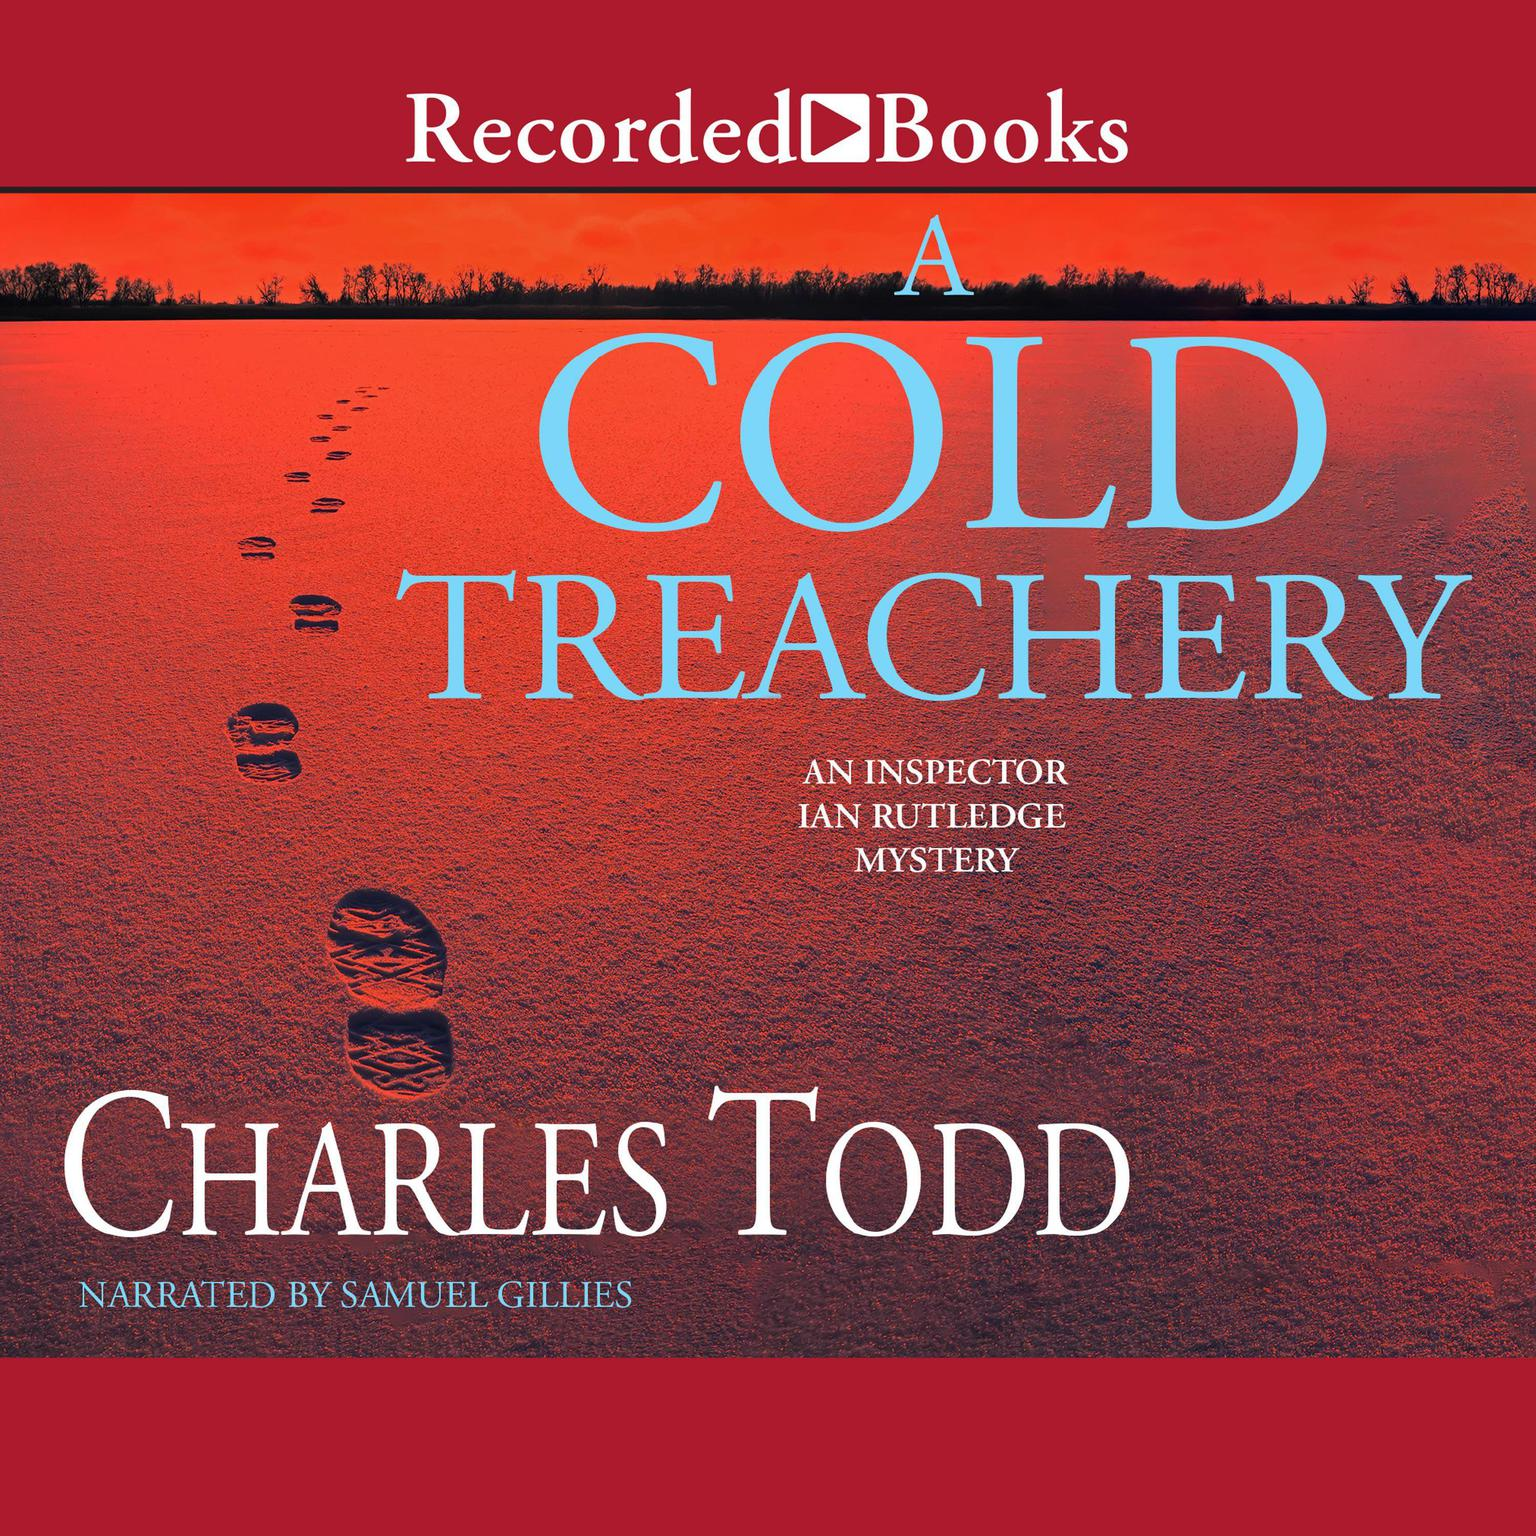 Printable A Cold Treachery Audiobook Cover Art